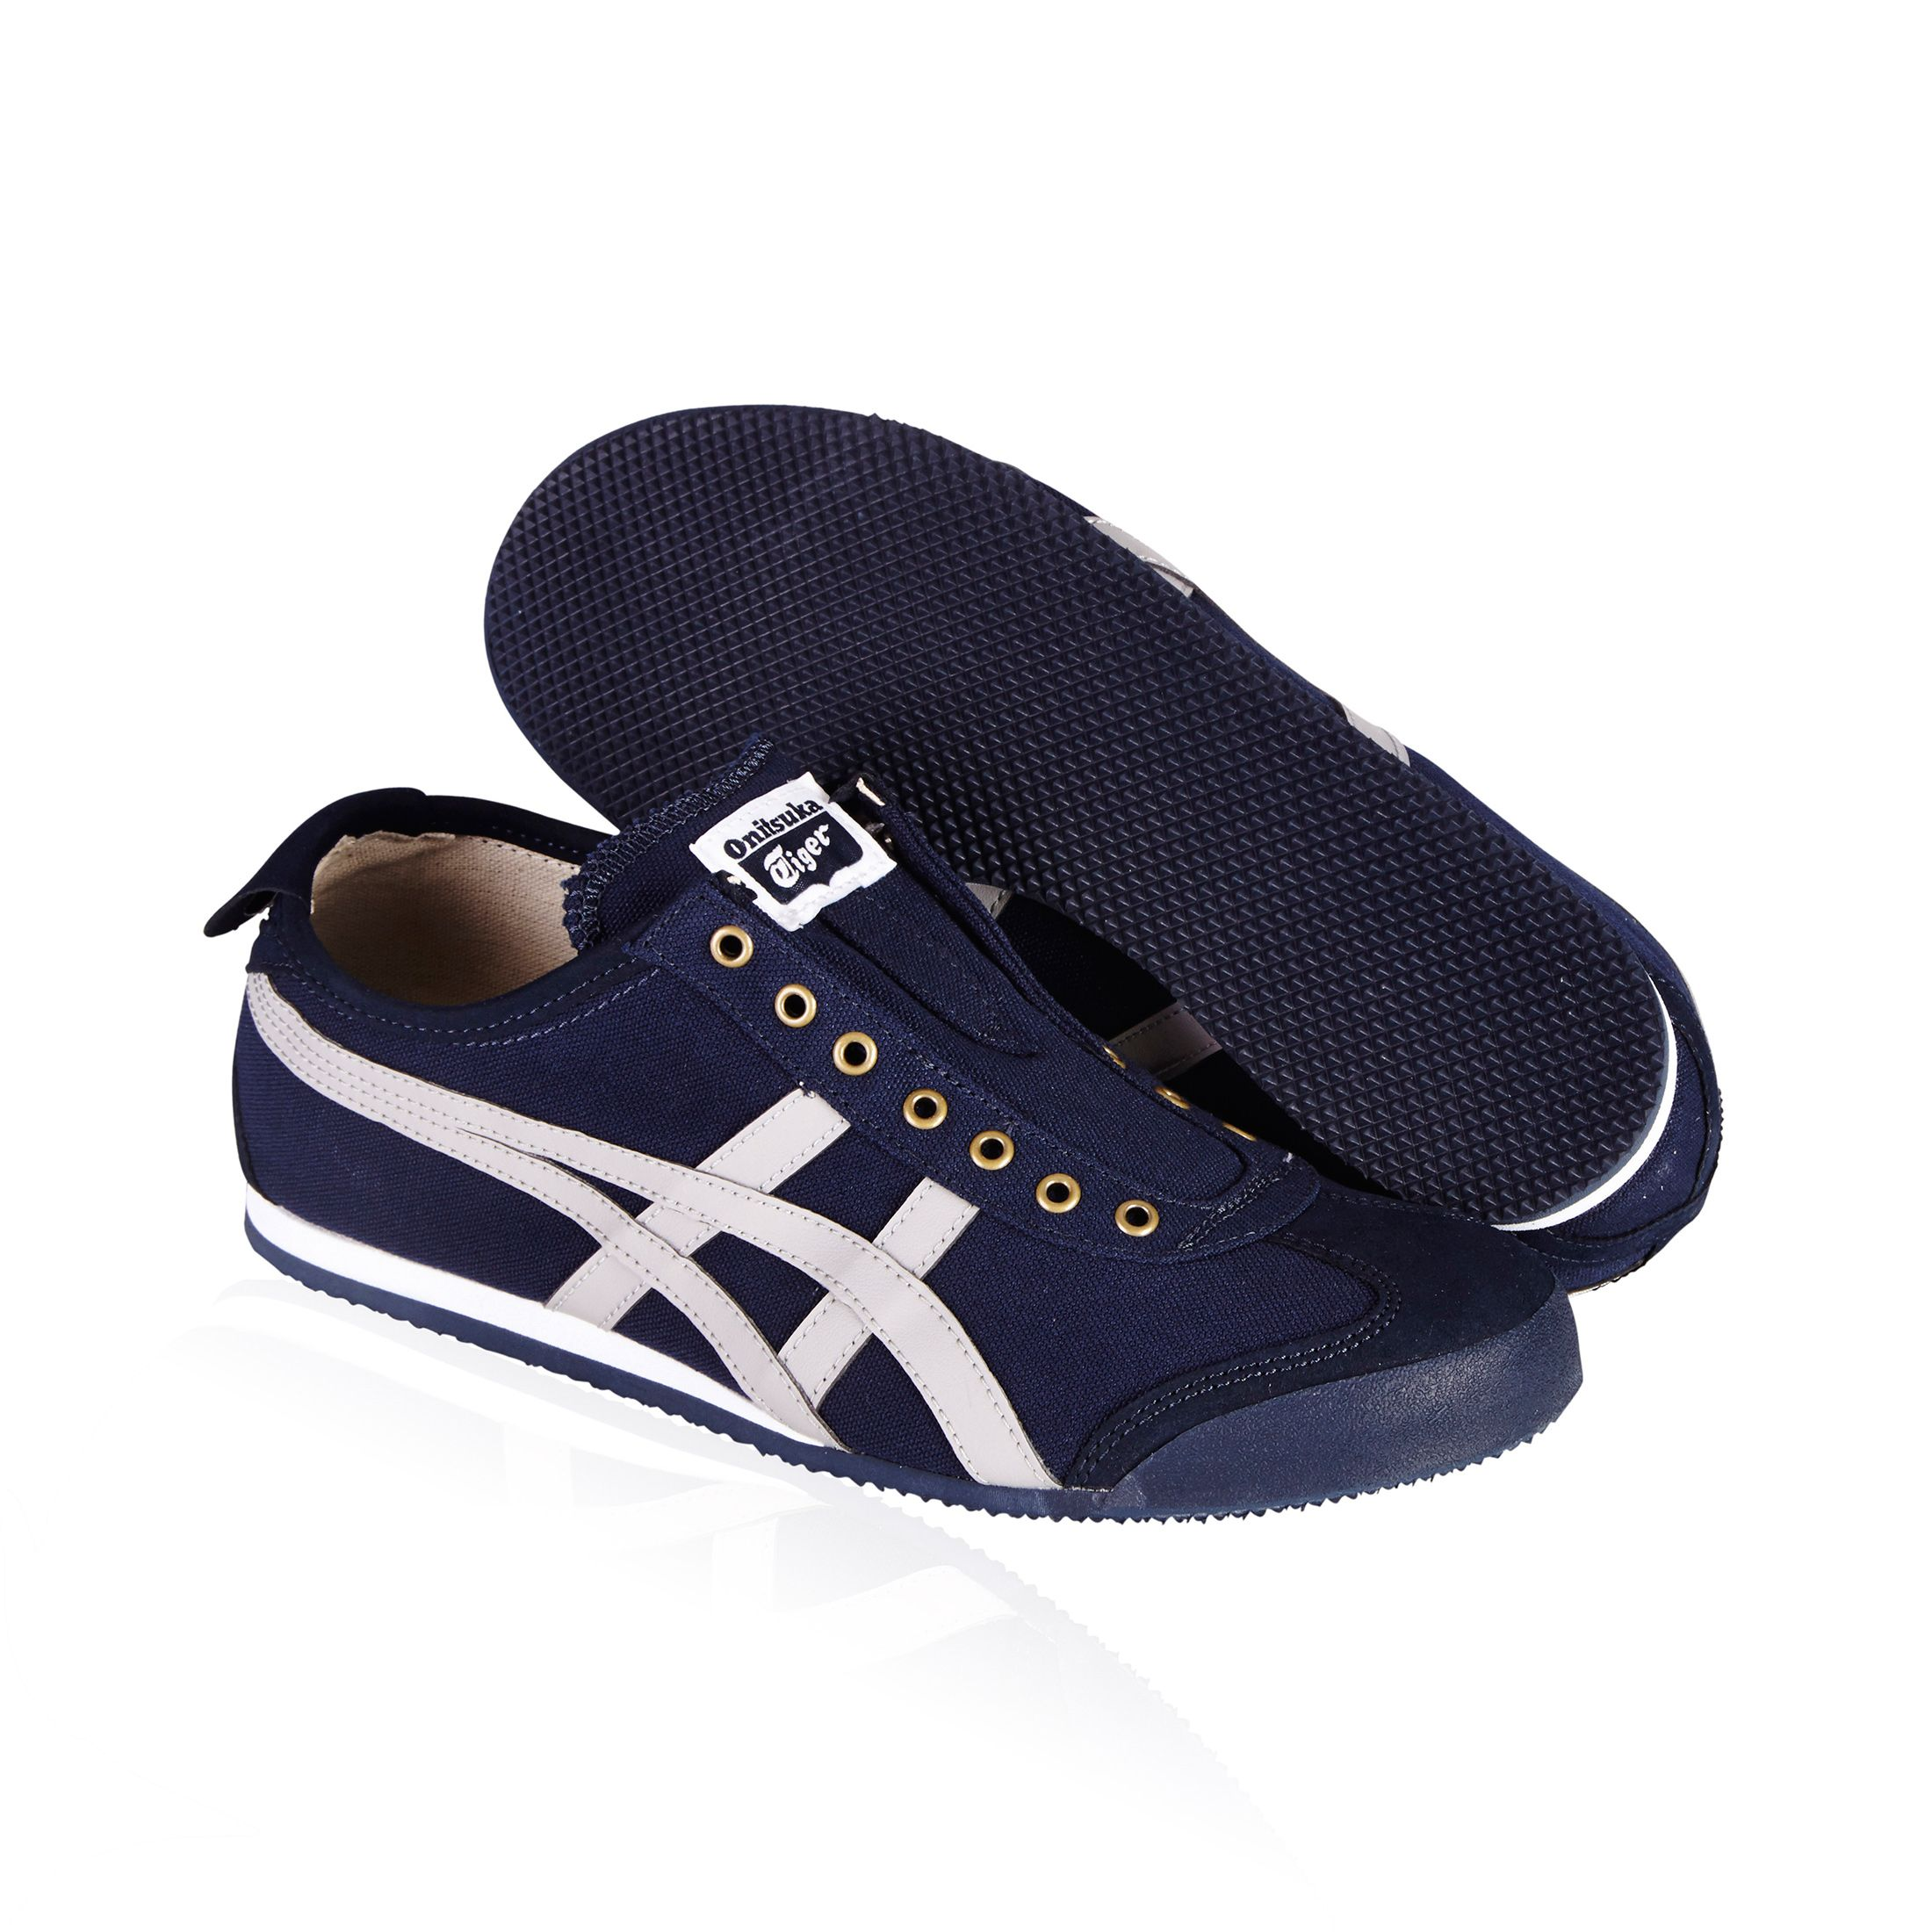 hot sale online 51e34 87a27 Onitsuka Tiger Mexico 66 slip on casual shoe- navy/grey ...